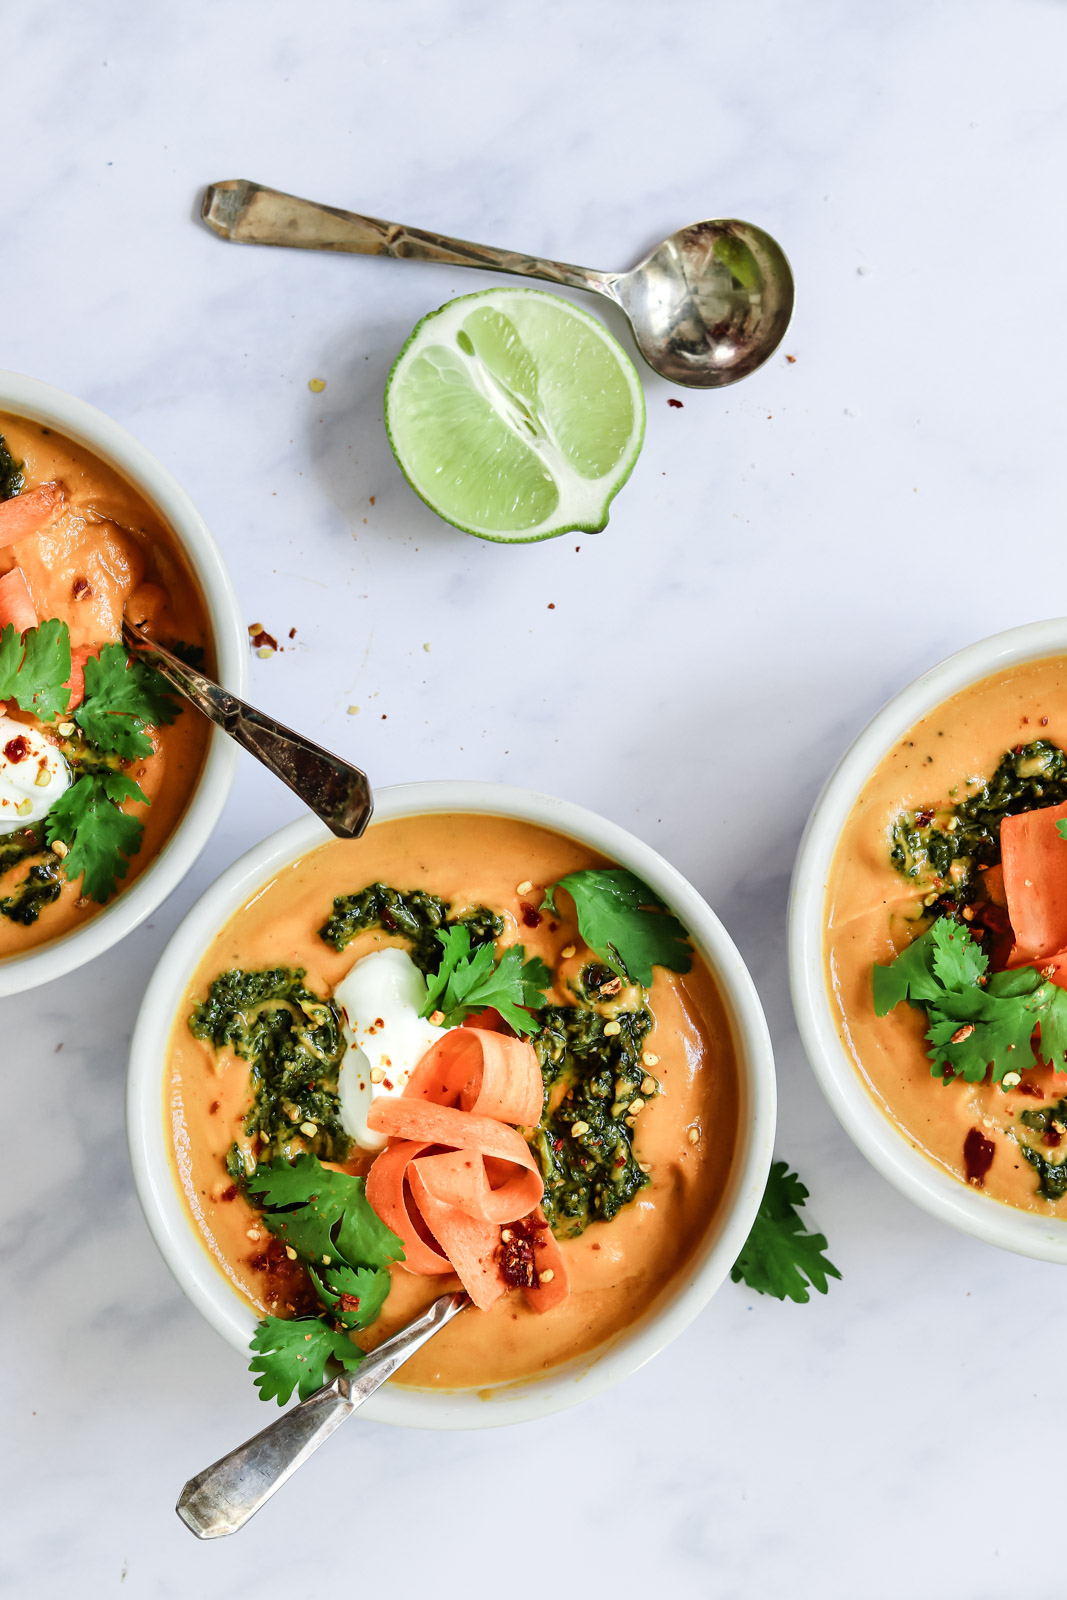 Three bowls of curried carrot coconut soup garnished with cilantro pesto and sour cream